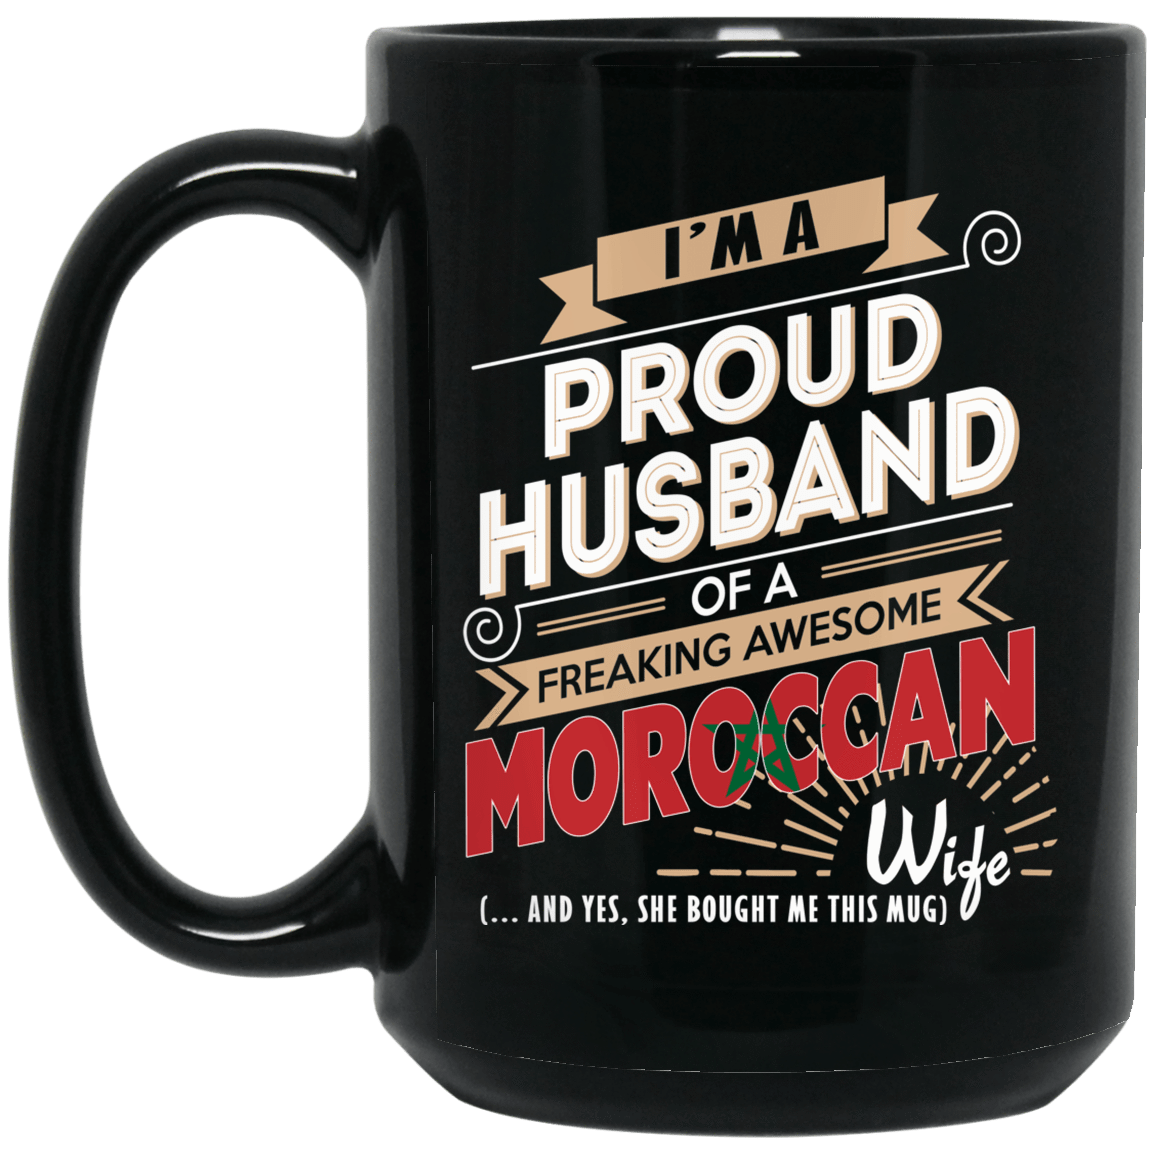 Proud Husband Of A Freaking Awesome Moroccan Wife Mug 1066-10182-72136514-49311 - Tee Ript